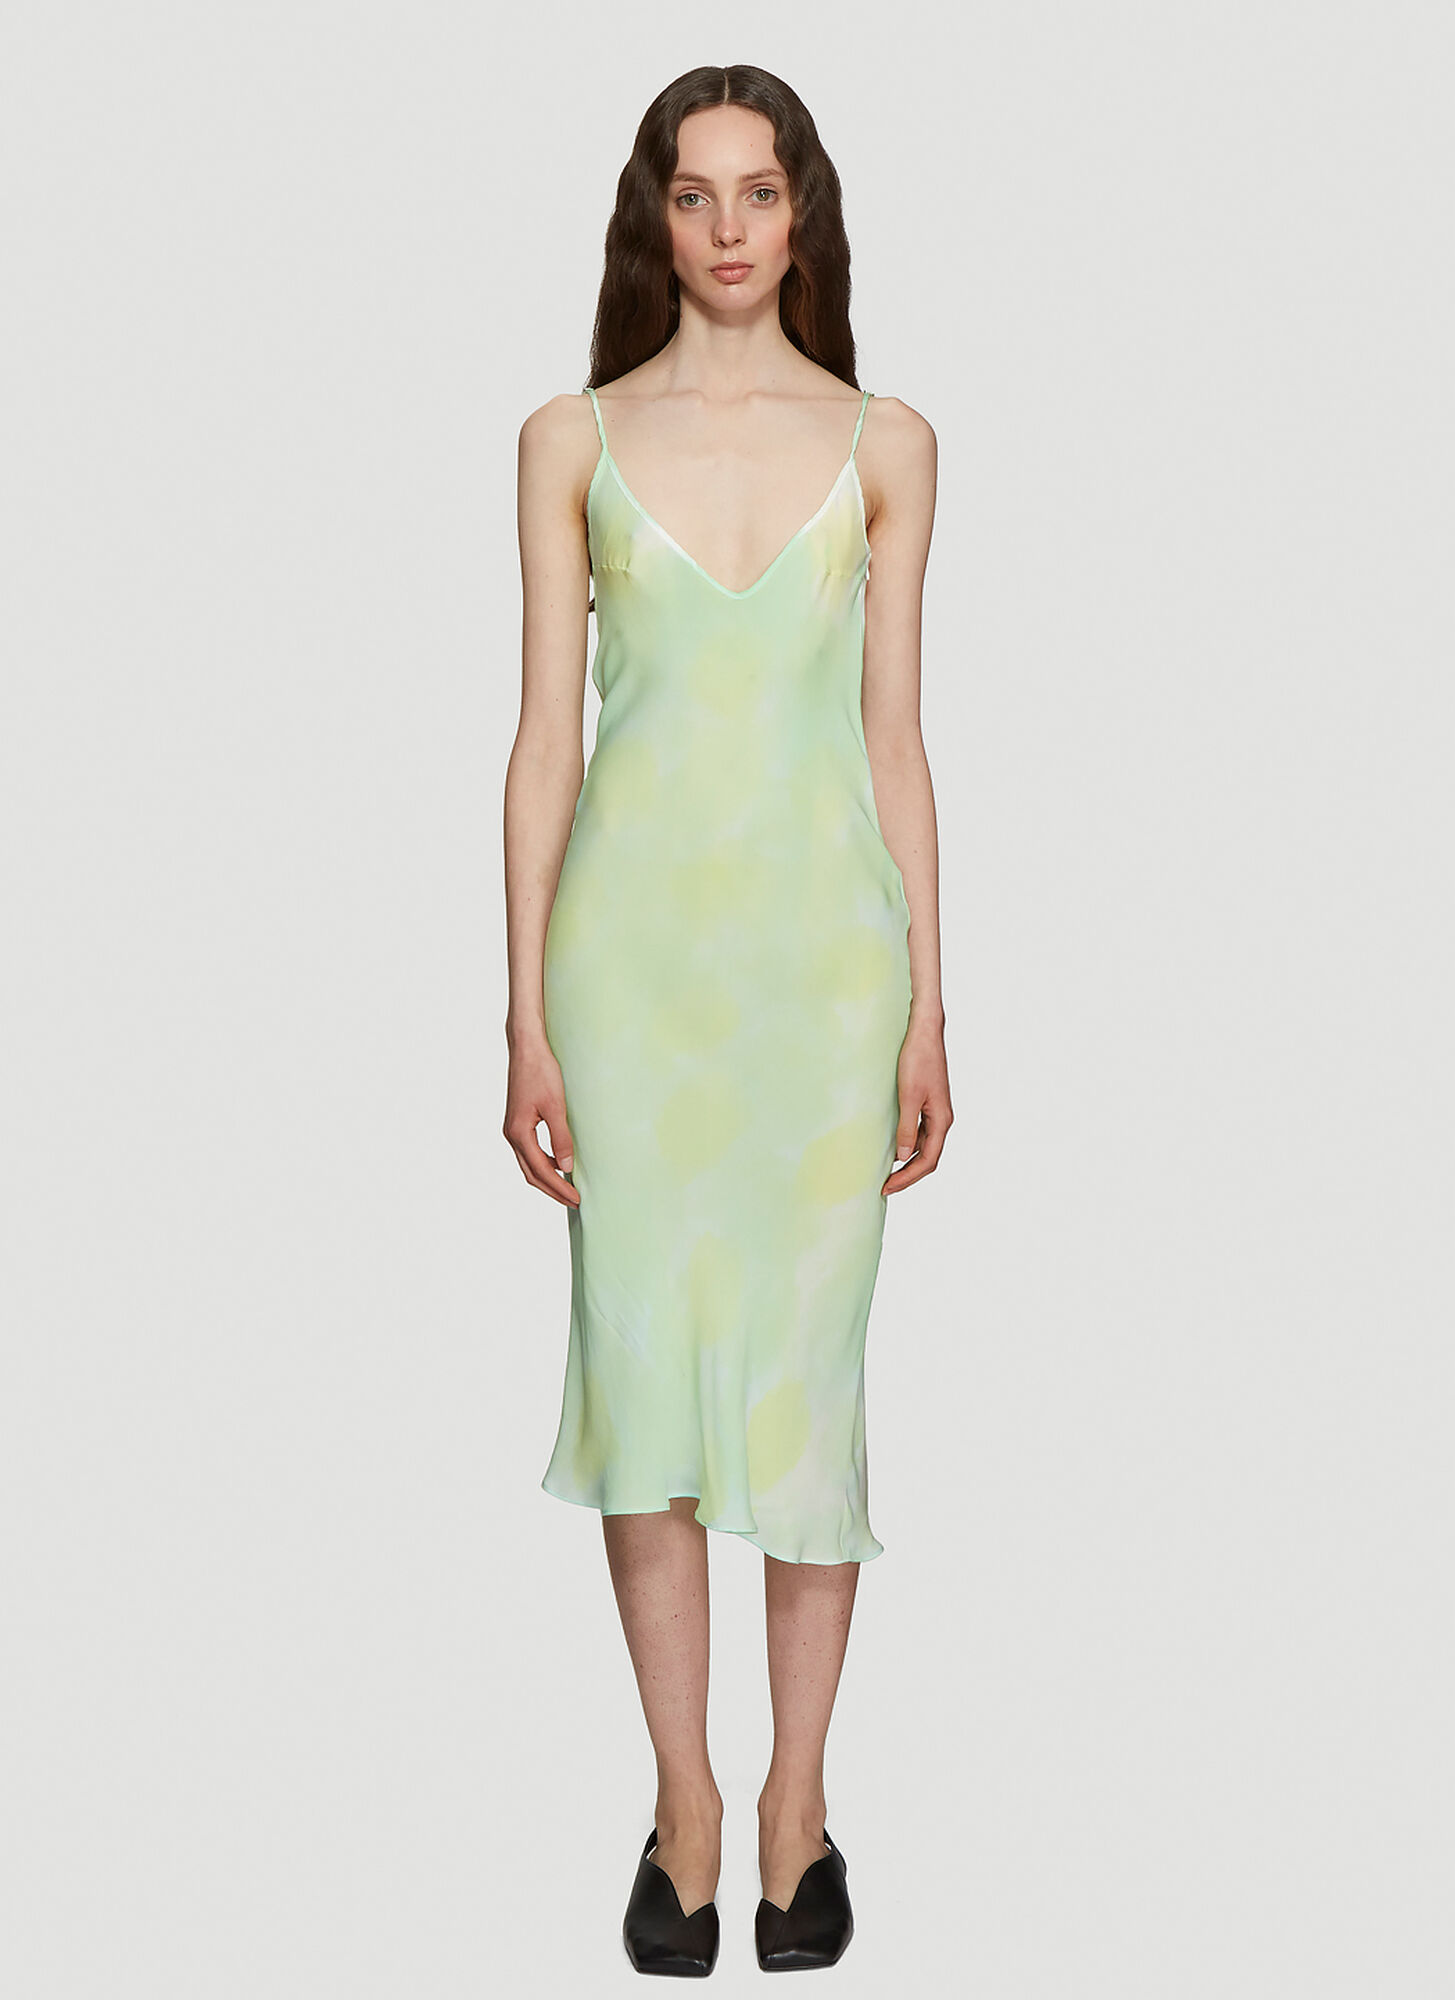 Collina Strada Barbarella Silk Tie-Dye Dress in Green